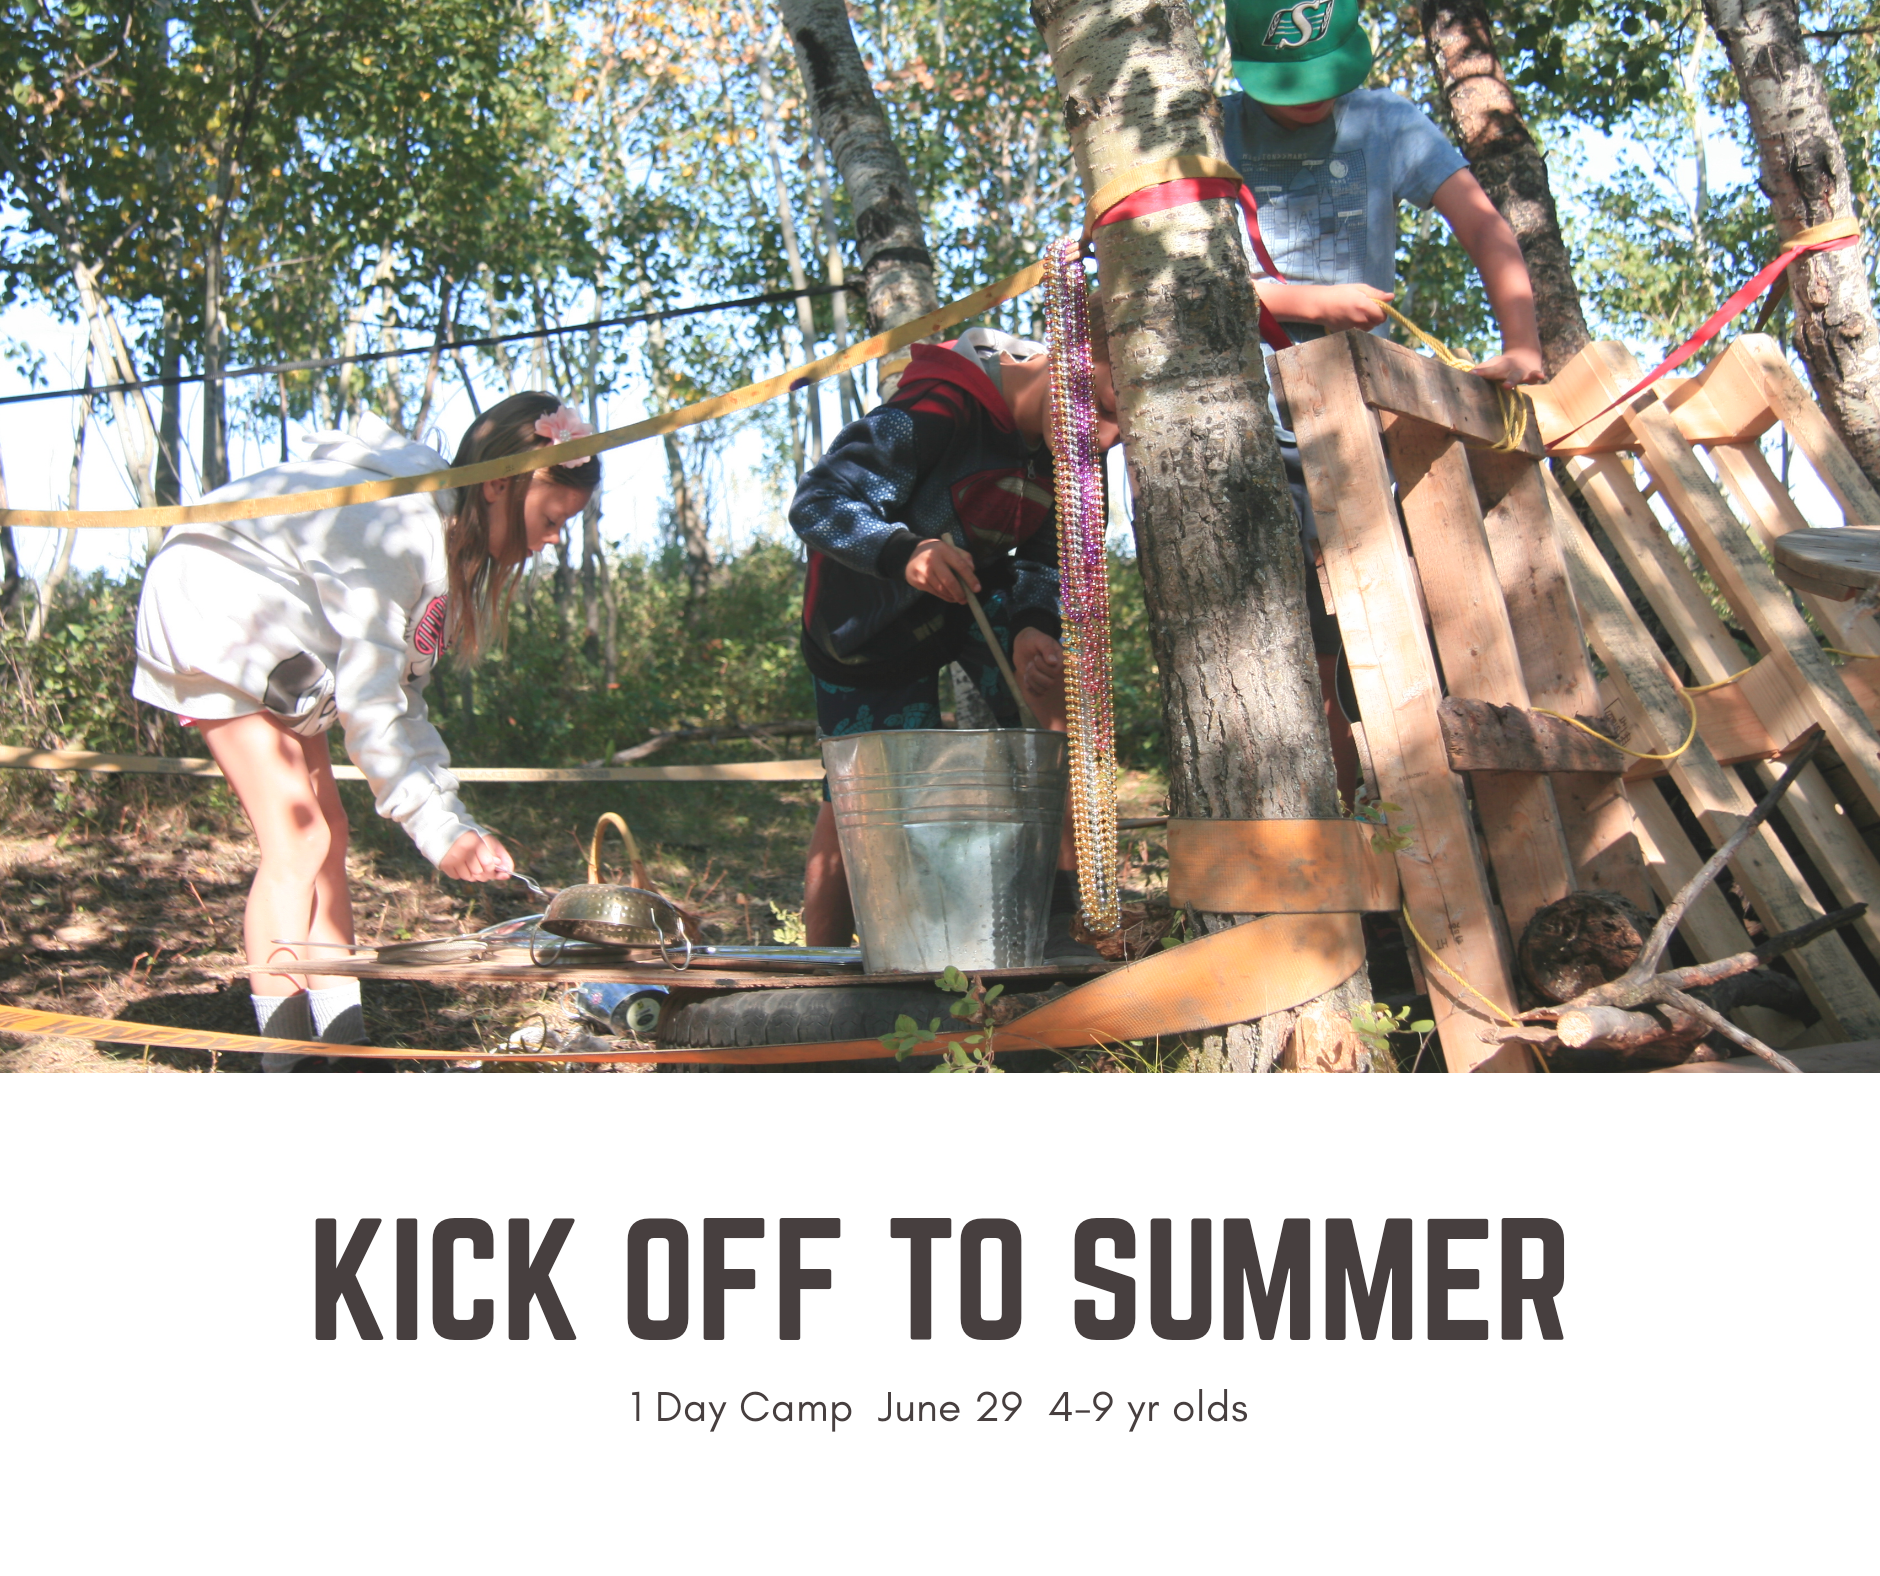 Kick off to Summer with TimberNook Saskatoon -Pulleys and forts